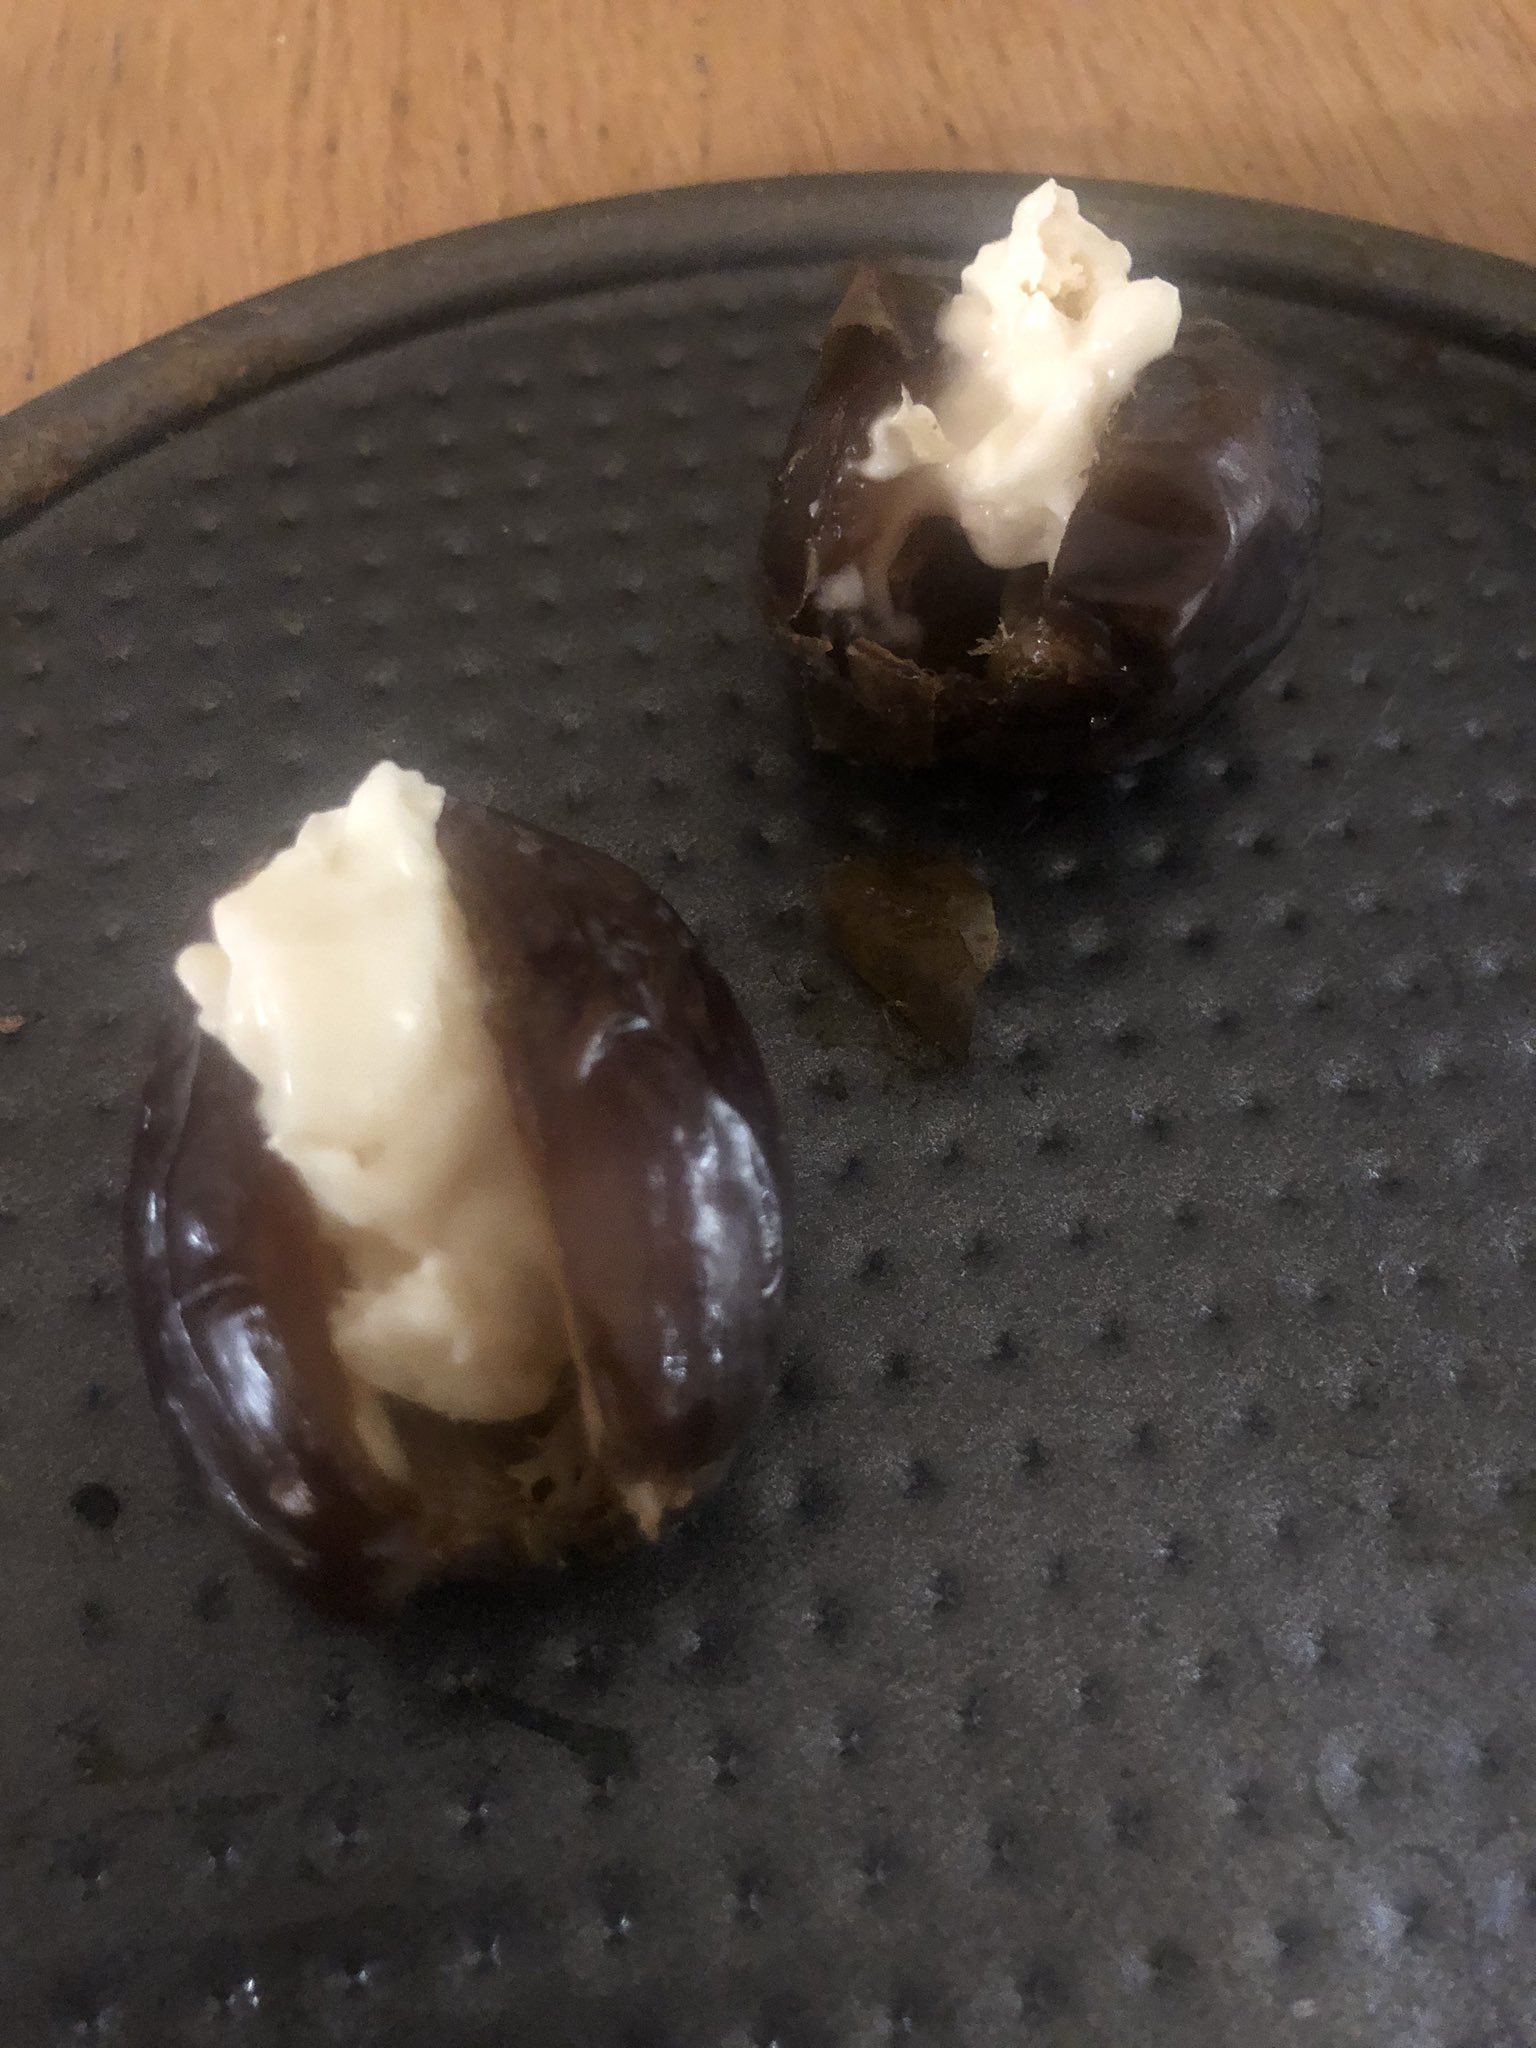 Richard Coles On Twitter Bon Bon Medjool Dates Stuffed With Blue Cheese If These Haven T Conquered The Nation By Christmas I Ll Eat My Chasuble Https T Co Iwuvadmdjt